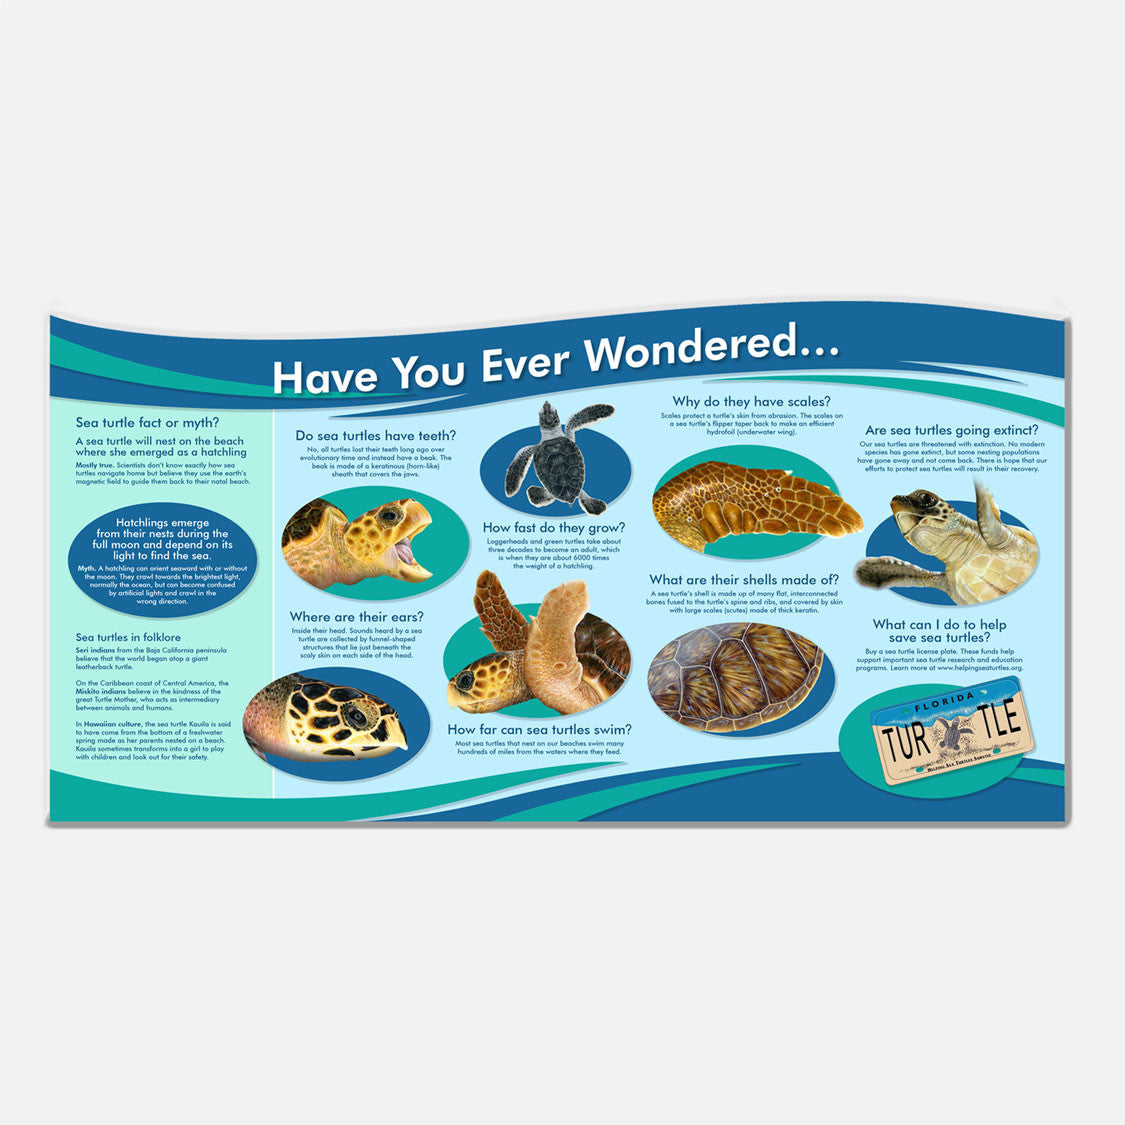 Sea turtle information and fun facts display panel